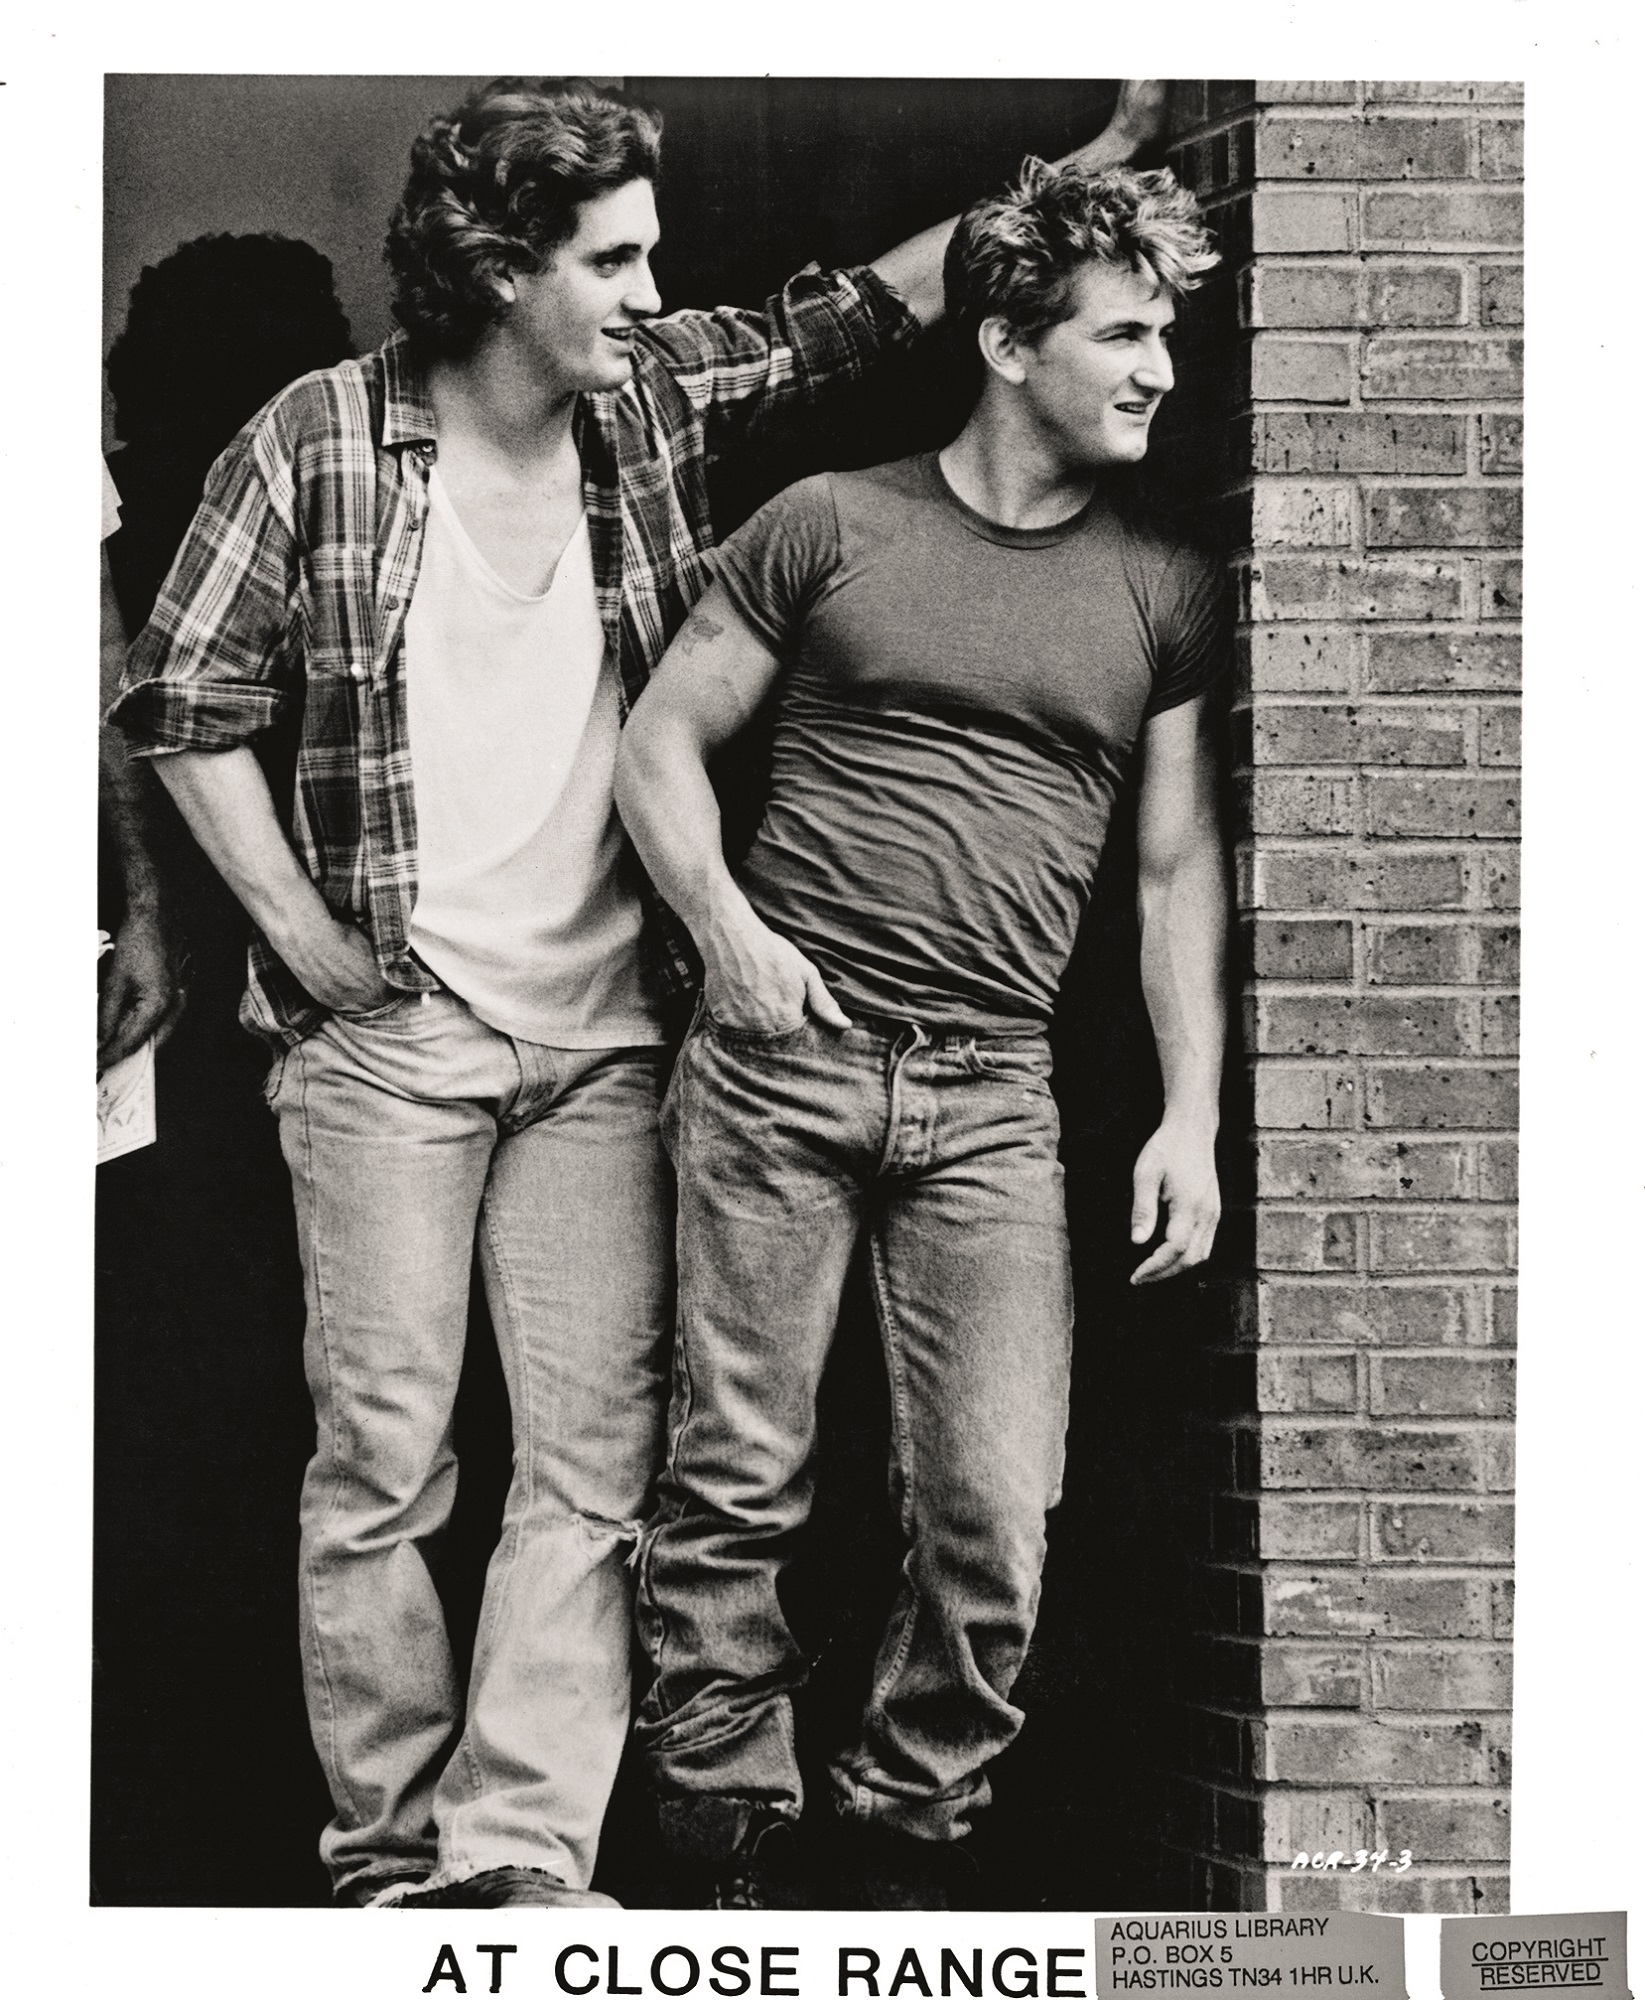 Chris Penn and Sean Penn looking around brick wall in a scene from the film 'At Close Range', 1986. (Photo by Orion/Getty Images)